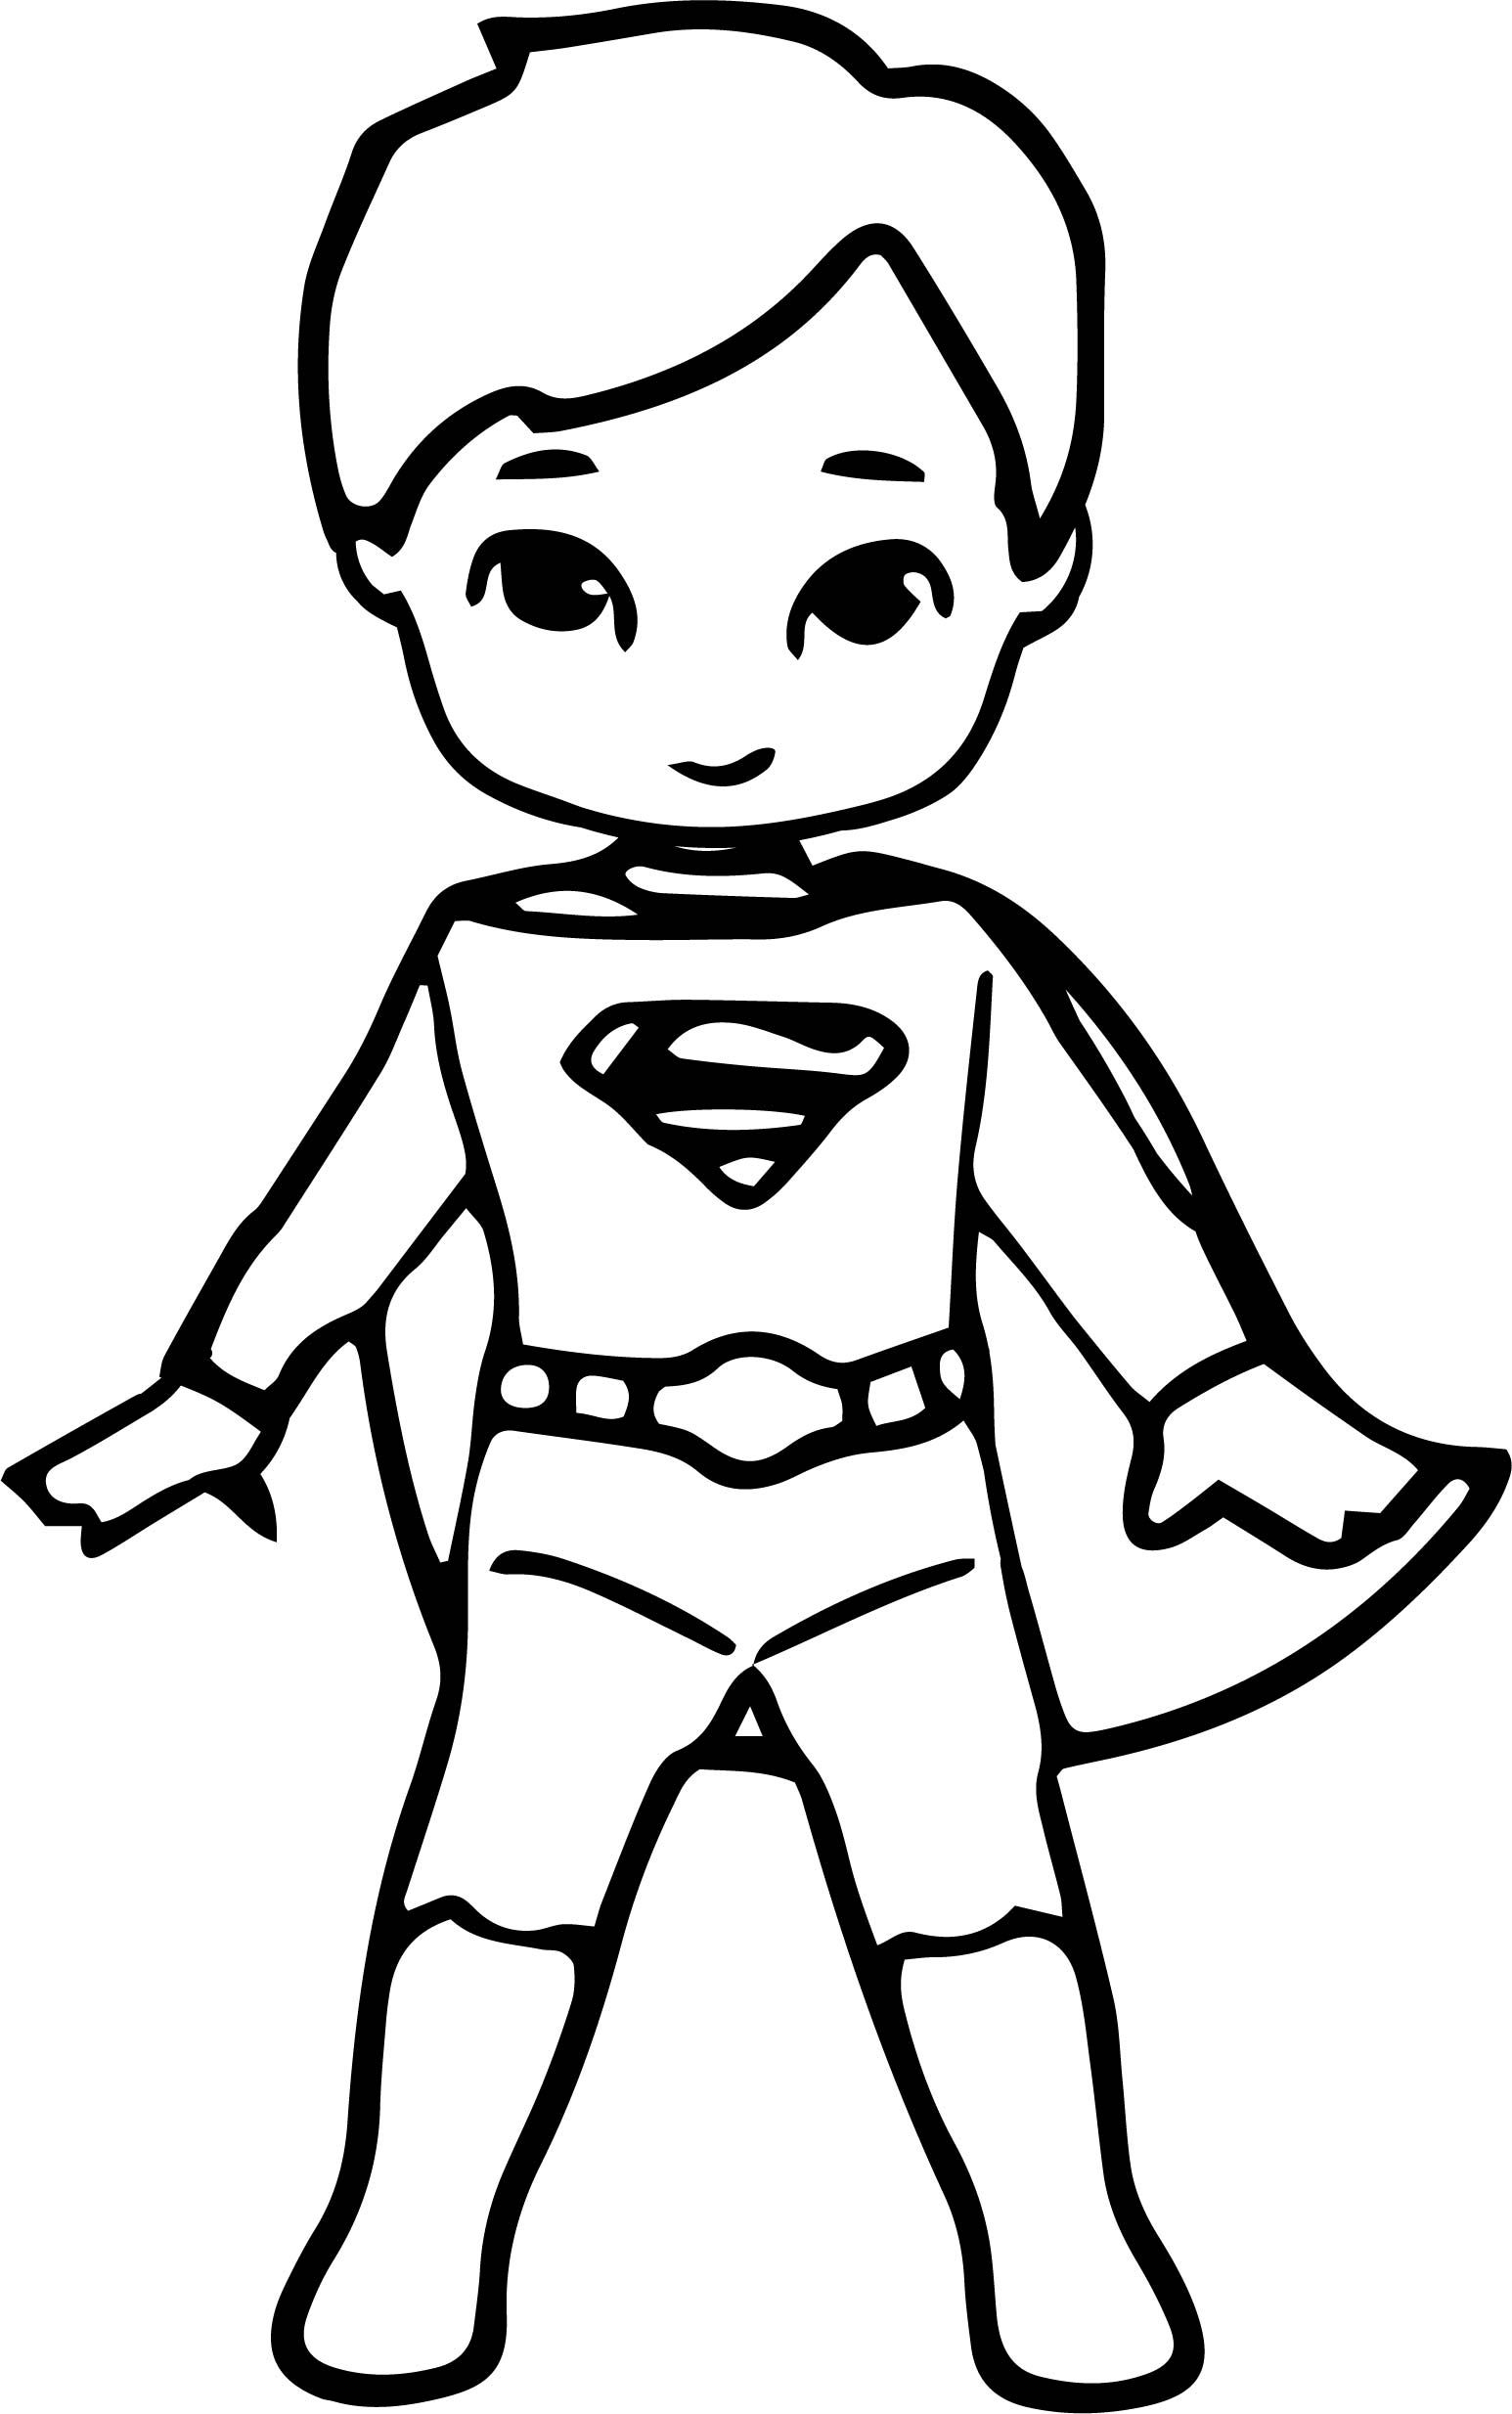 Coloring Rocks Superhero Coloring Pages Superman Coloring Pages Superhero Coloring